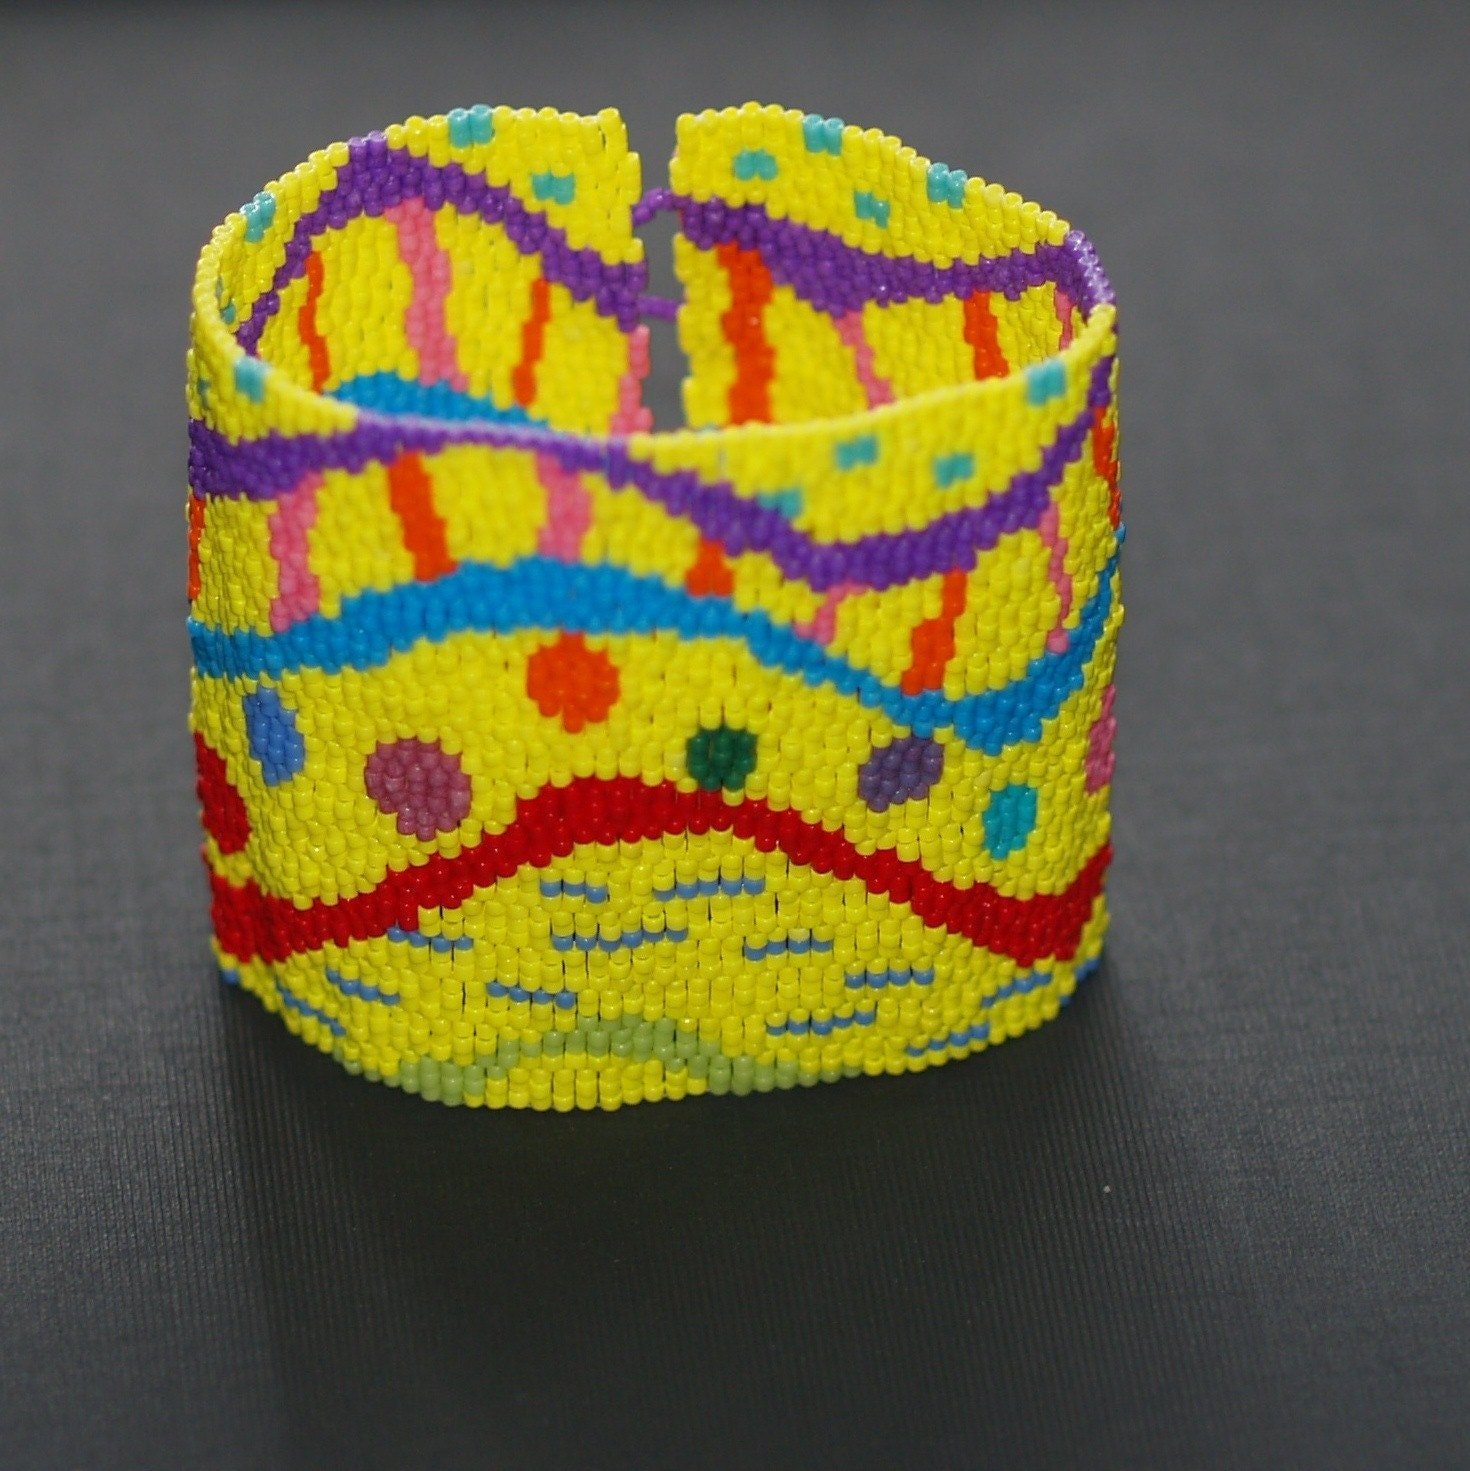 Celebration - Super Wide Beadwoven Peyote Cuff (3085)